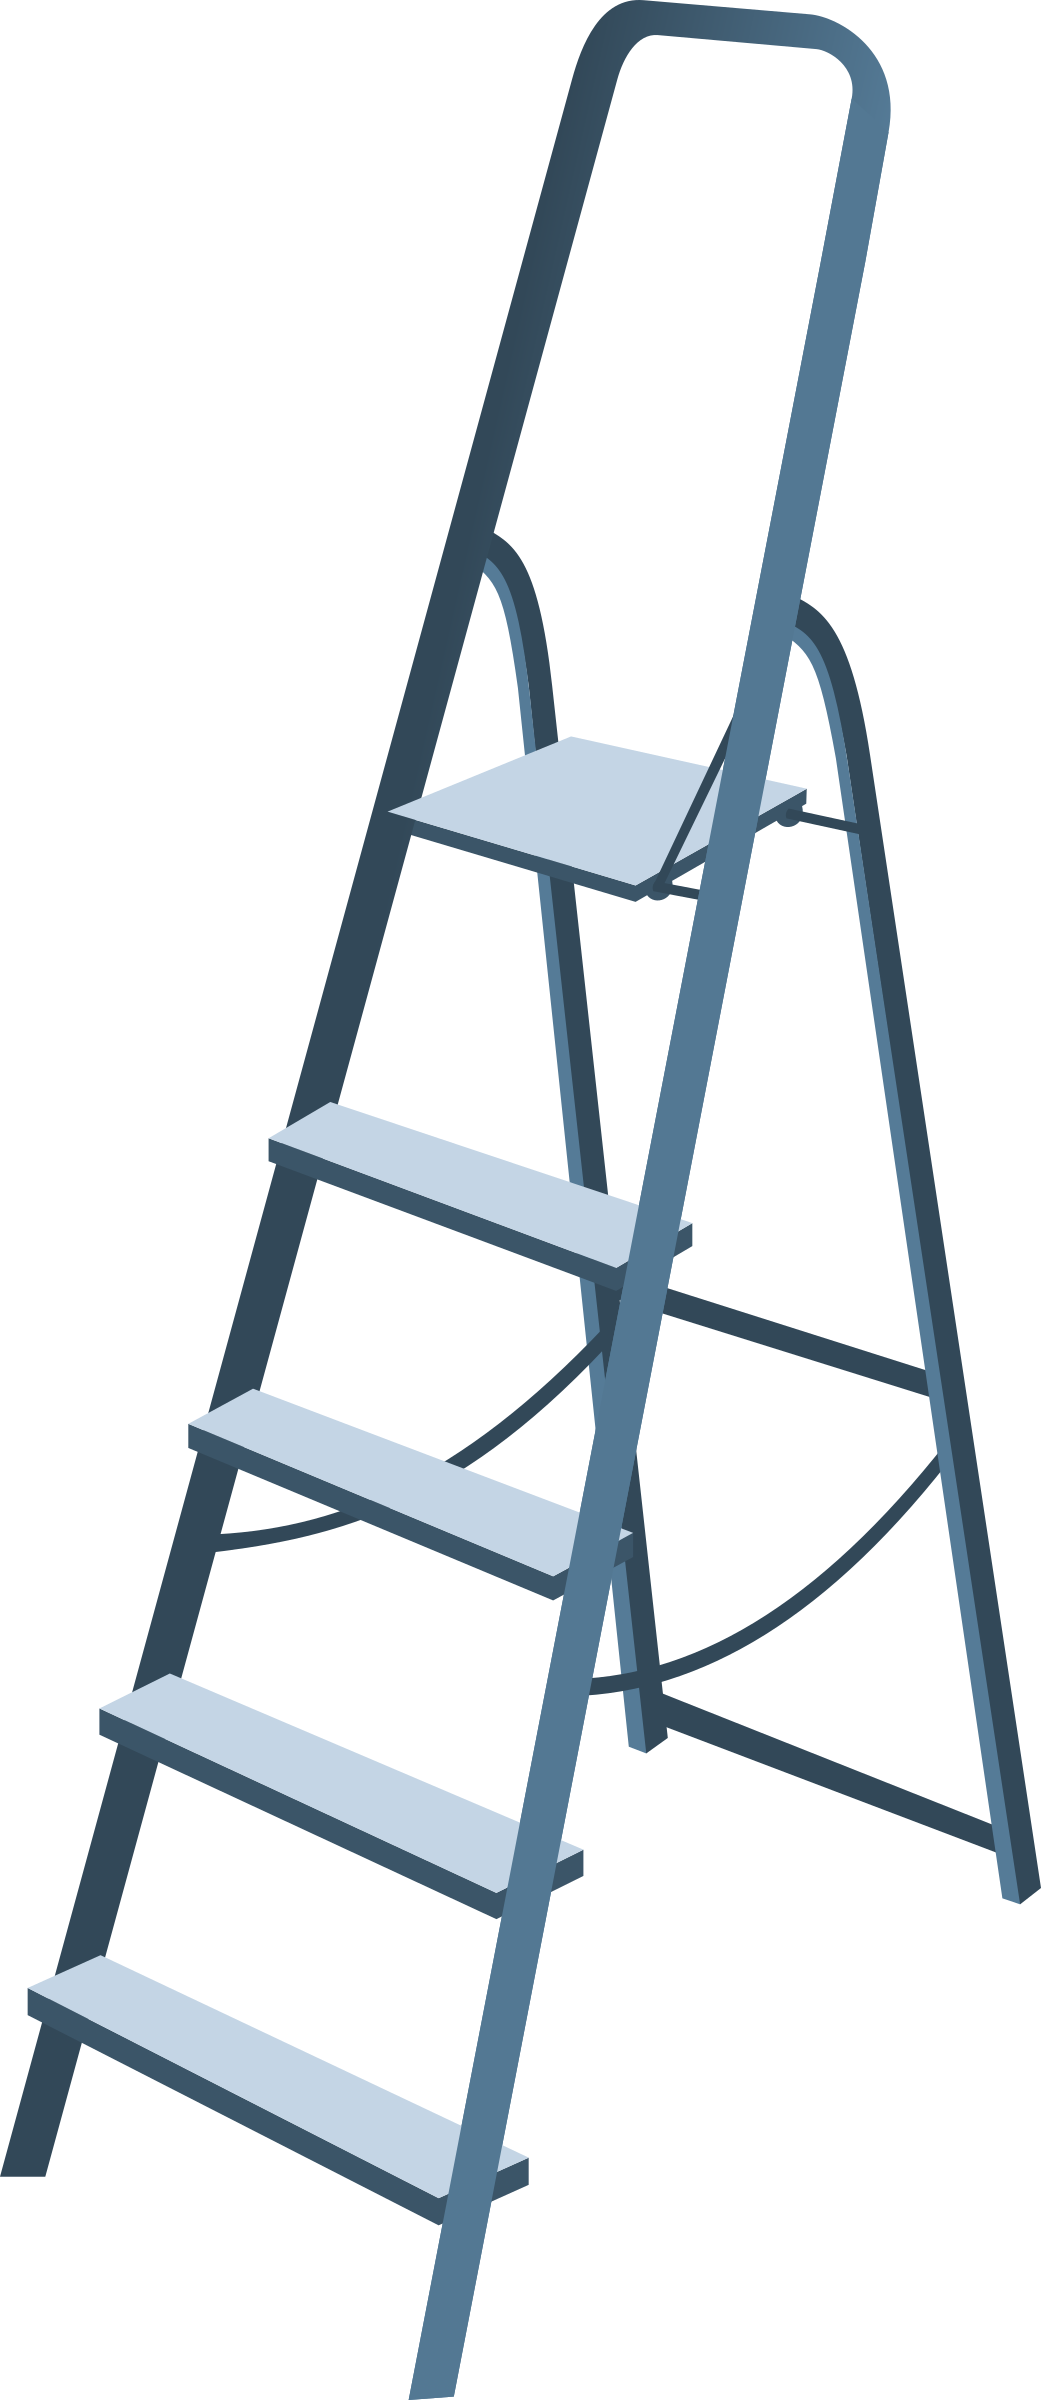 Step Ladder Clipart 20 Free Cliparts Download Images On